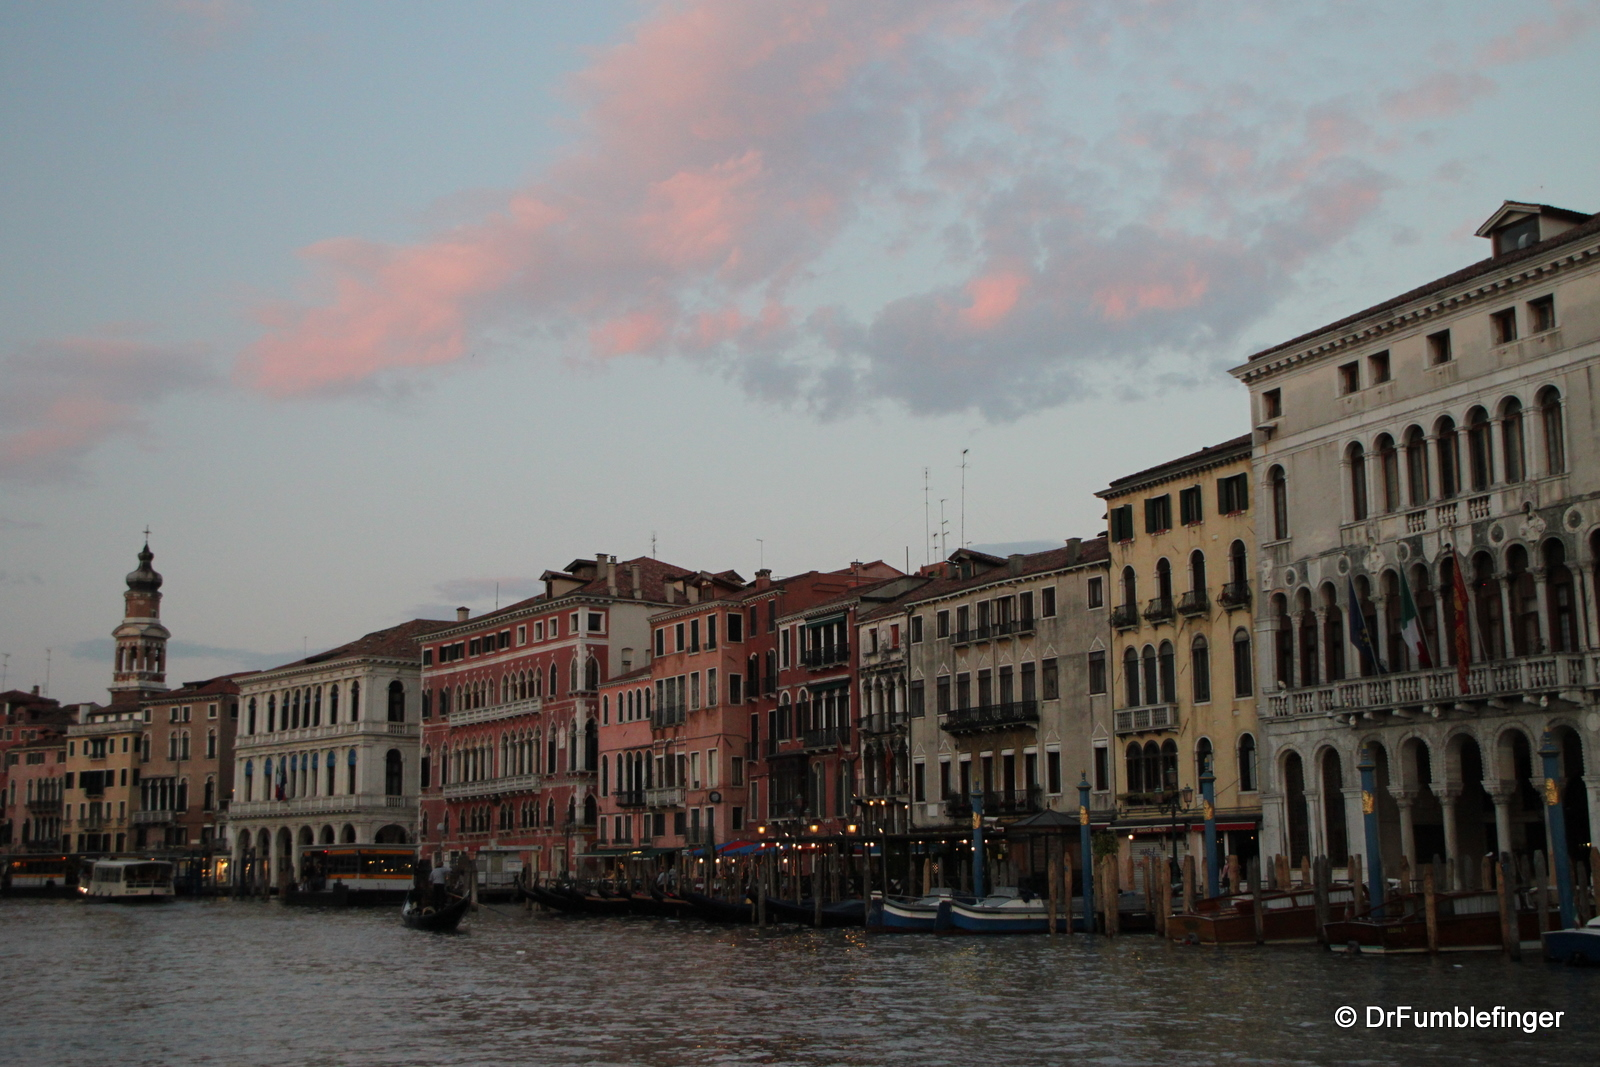 Dusk over the Grand Canal